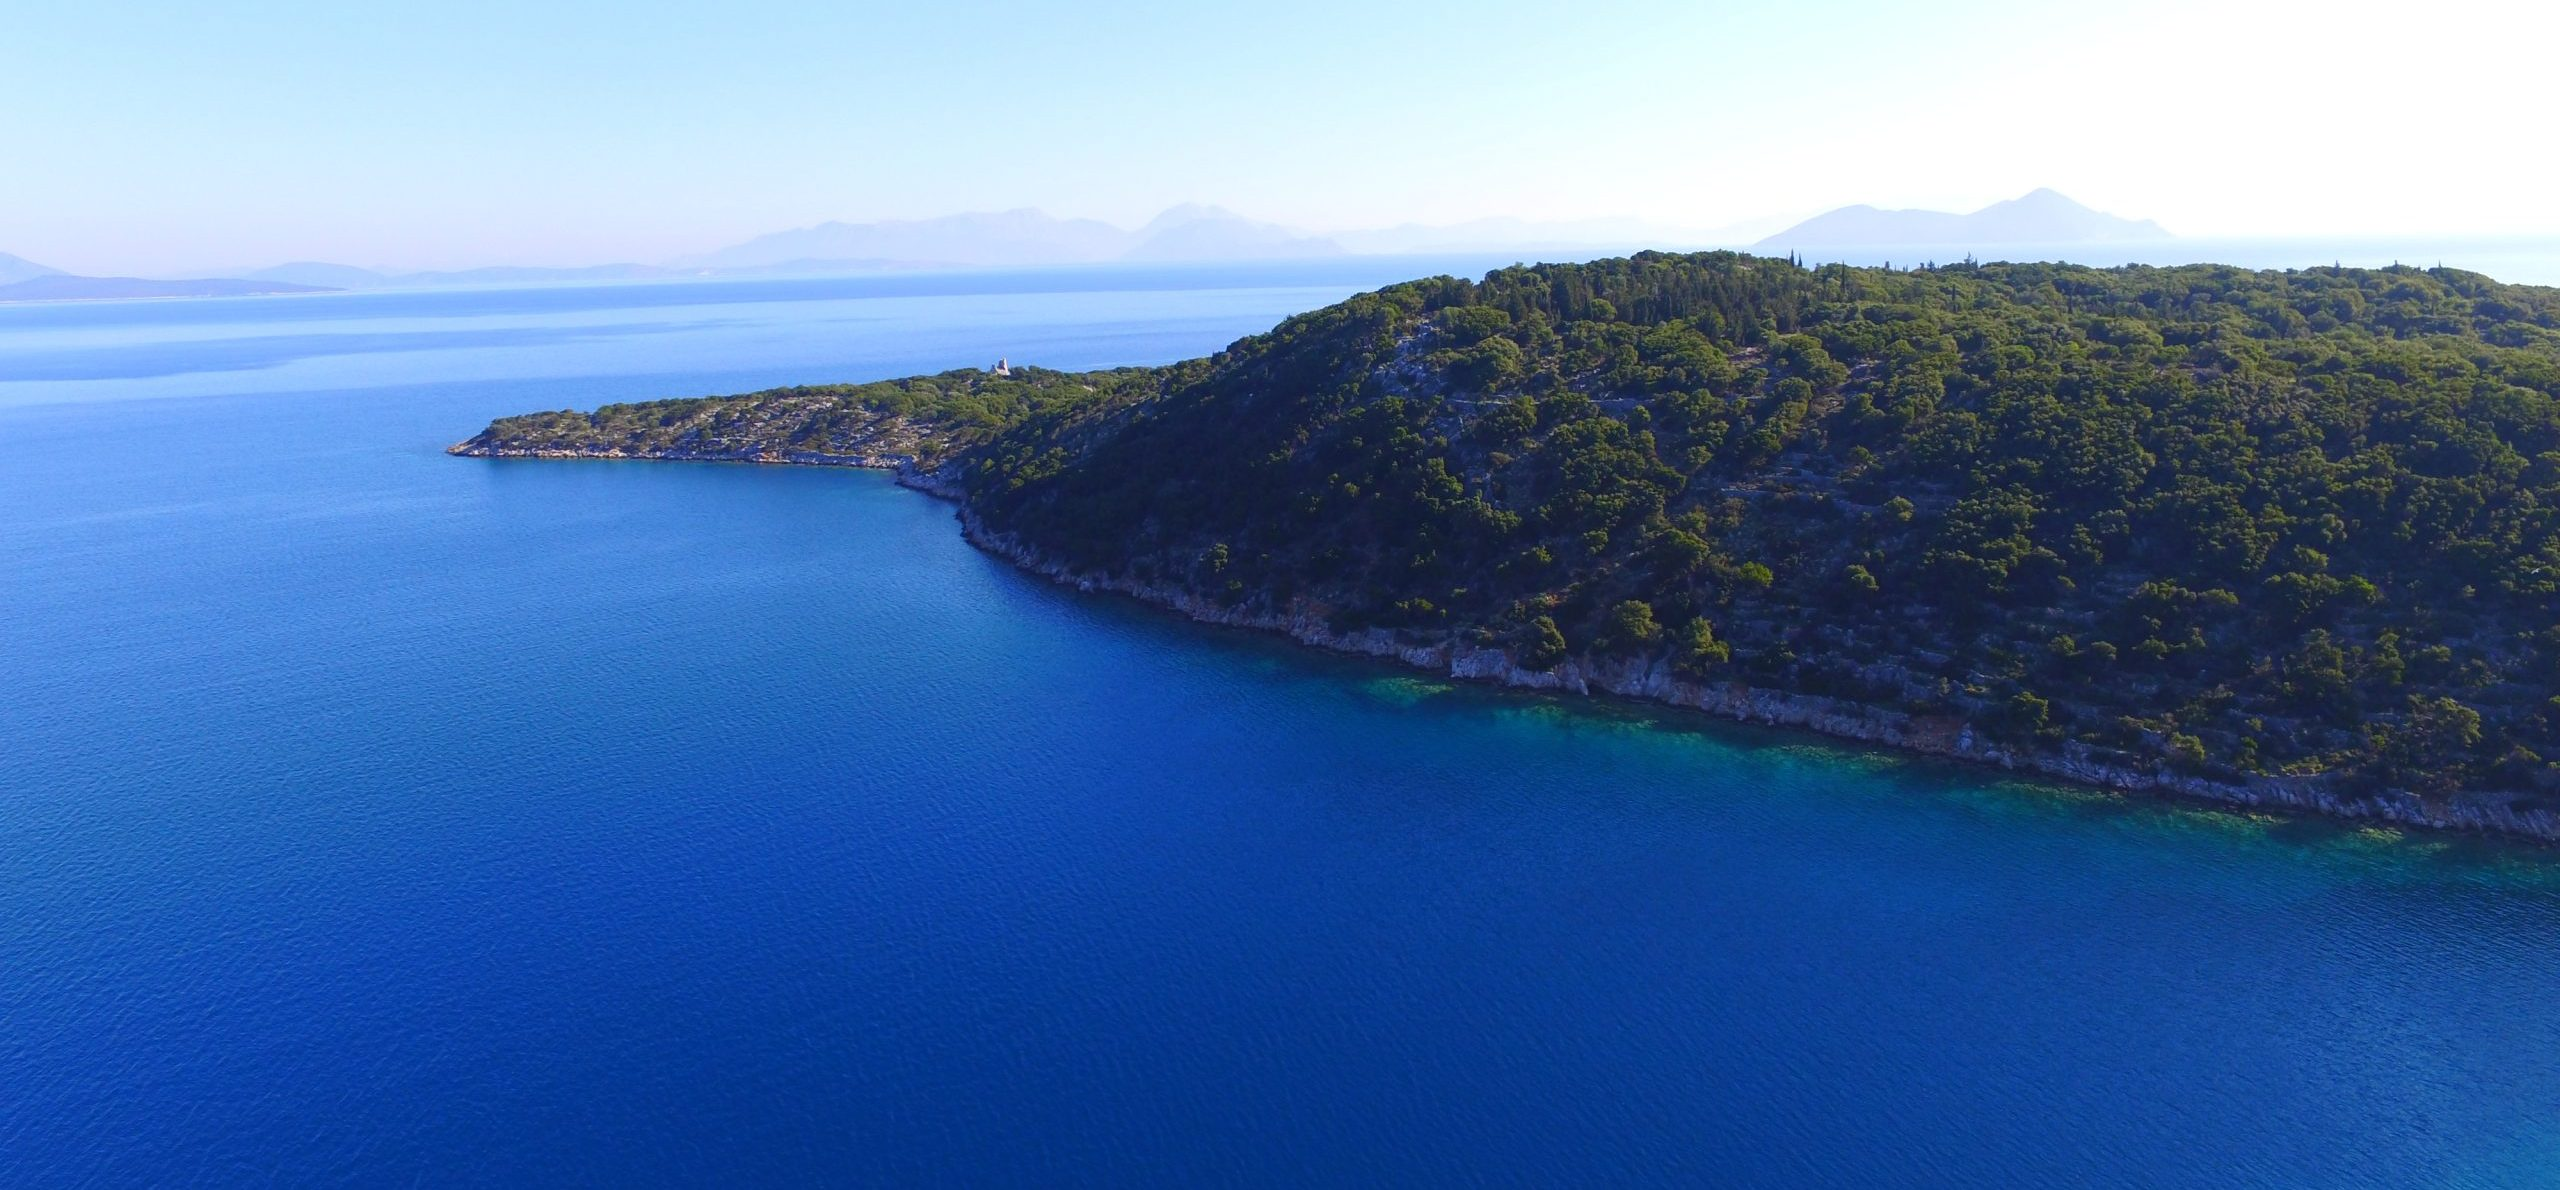 MV Properties, Ithaca Greece real estate, Kioni Rachi